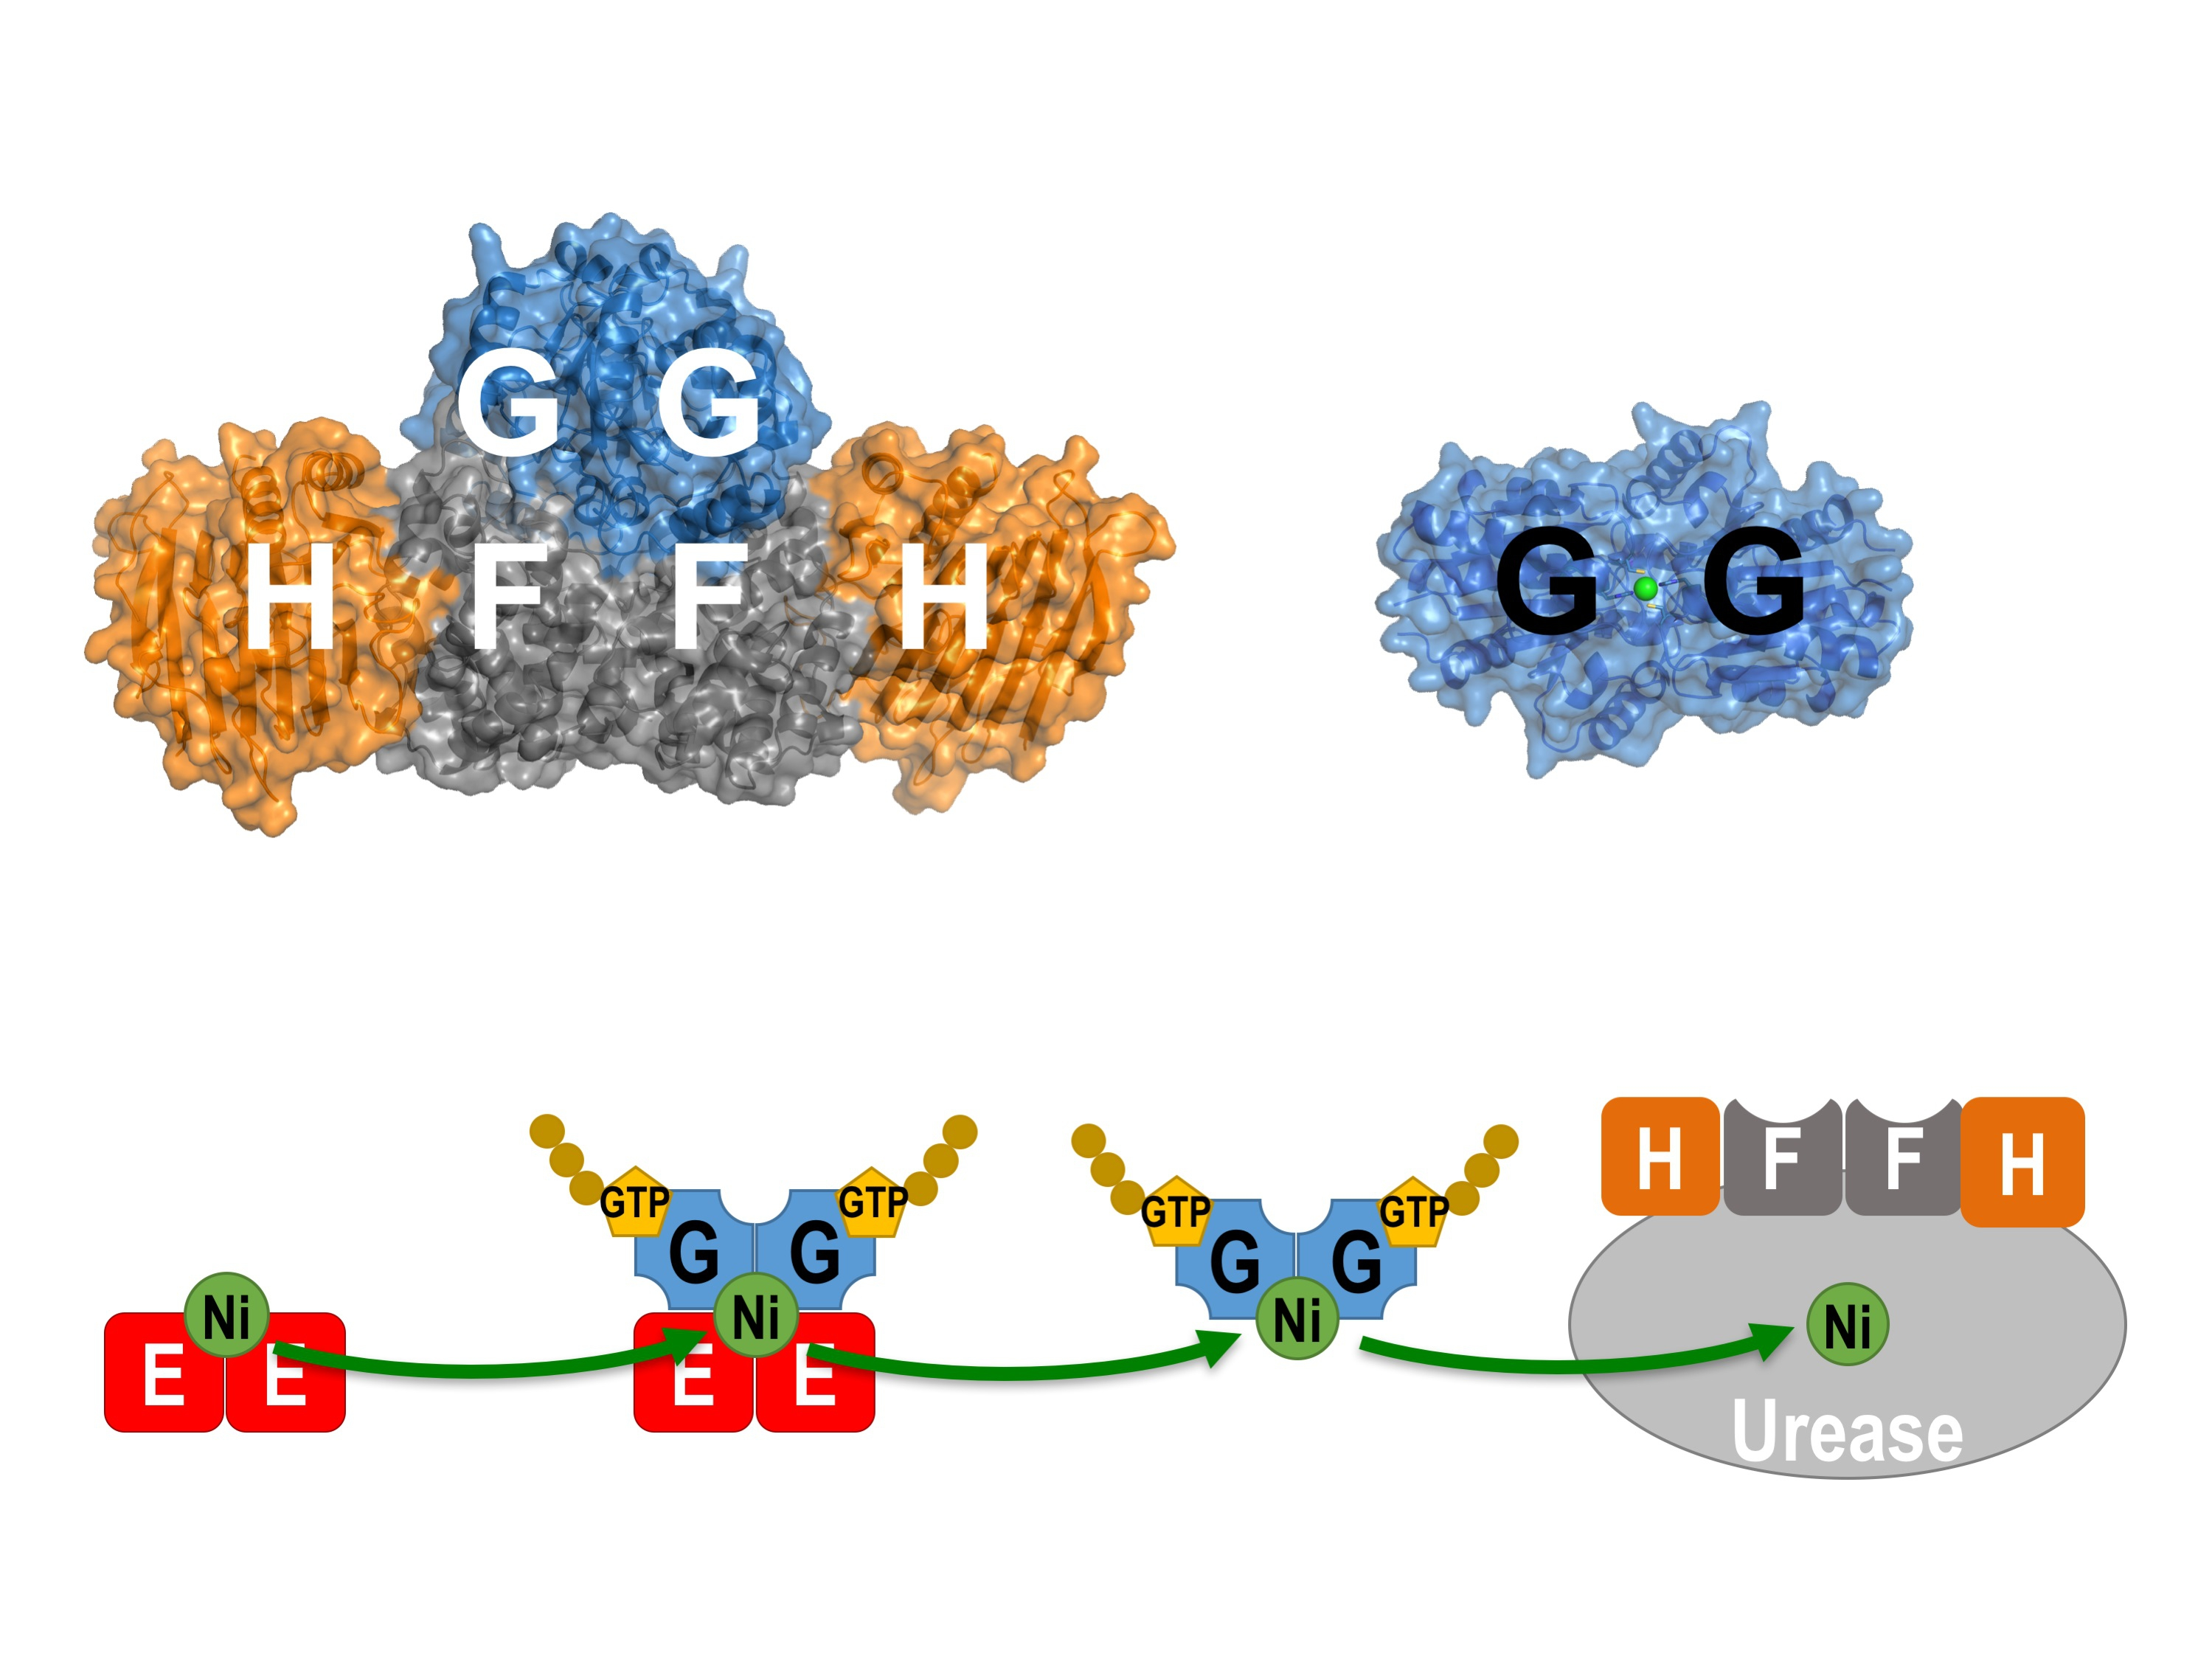 Professor Wong and his team used X-ray crystallography as a molecular microscope to visualise how the helper proteins (UreE, UreF, UreG, and UreH) work together to deliver the toxic nickel ions to the urease, an enzyme essential for the infection of the H. pylori in the acidic human stomach.